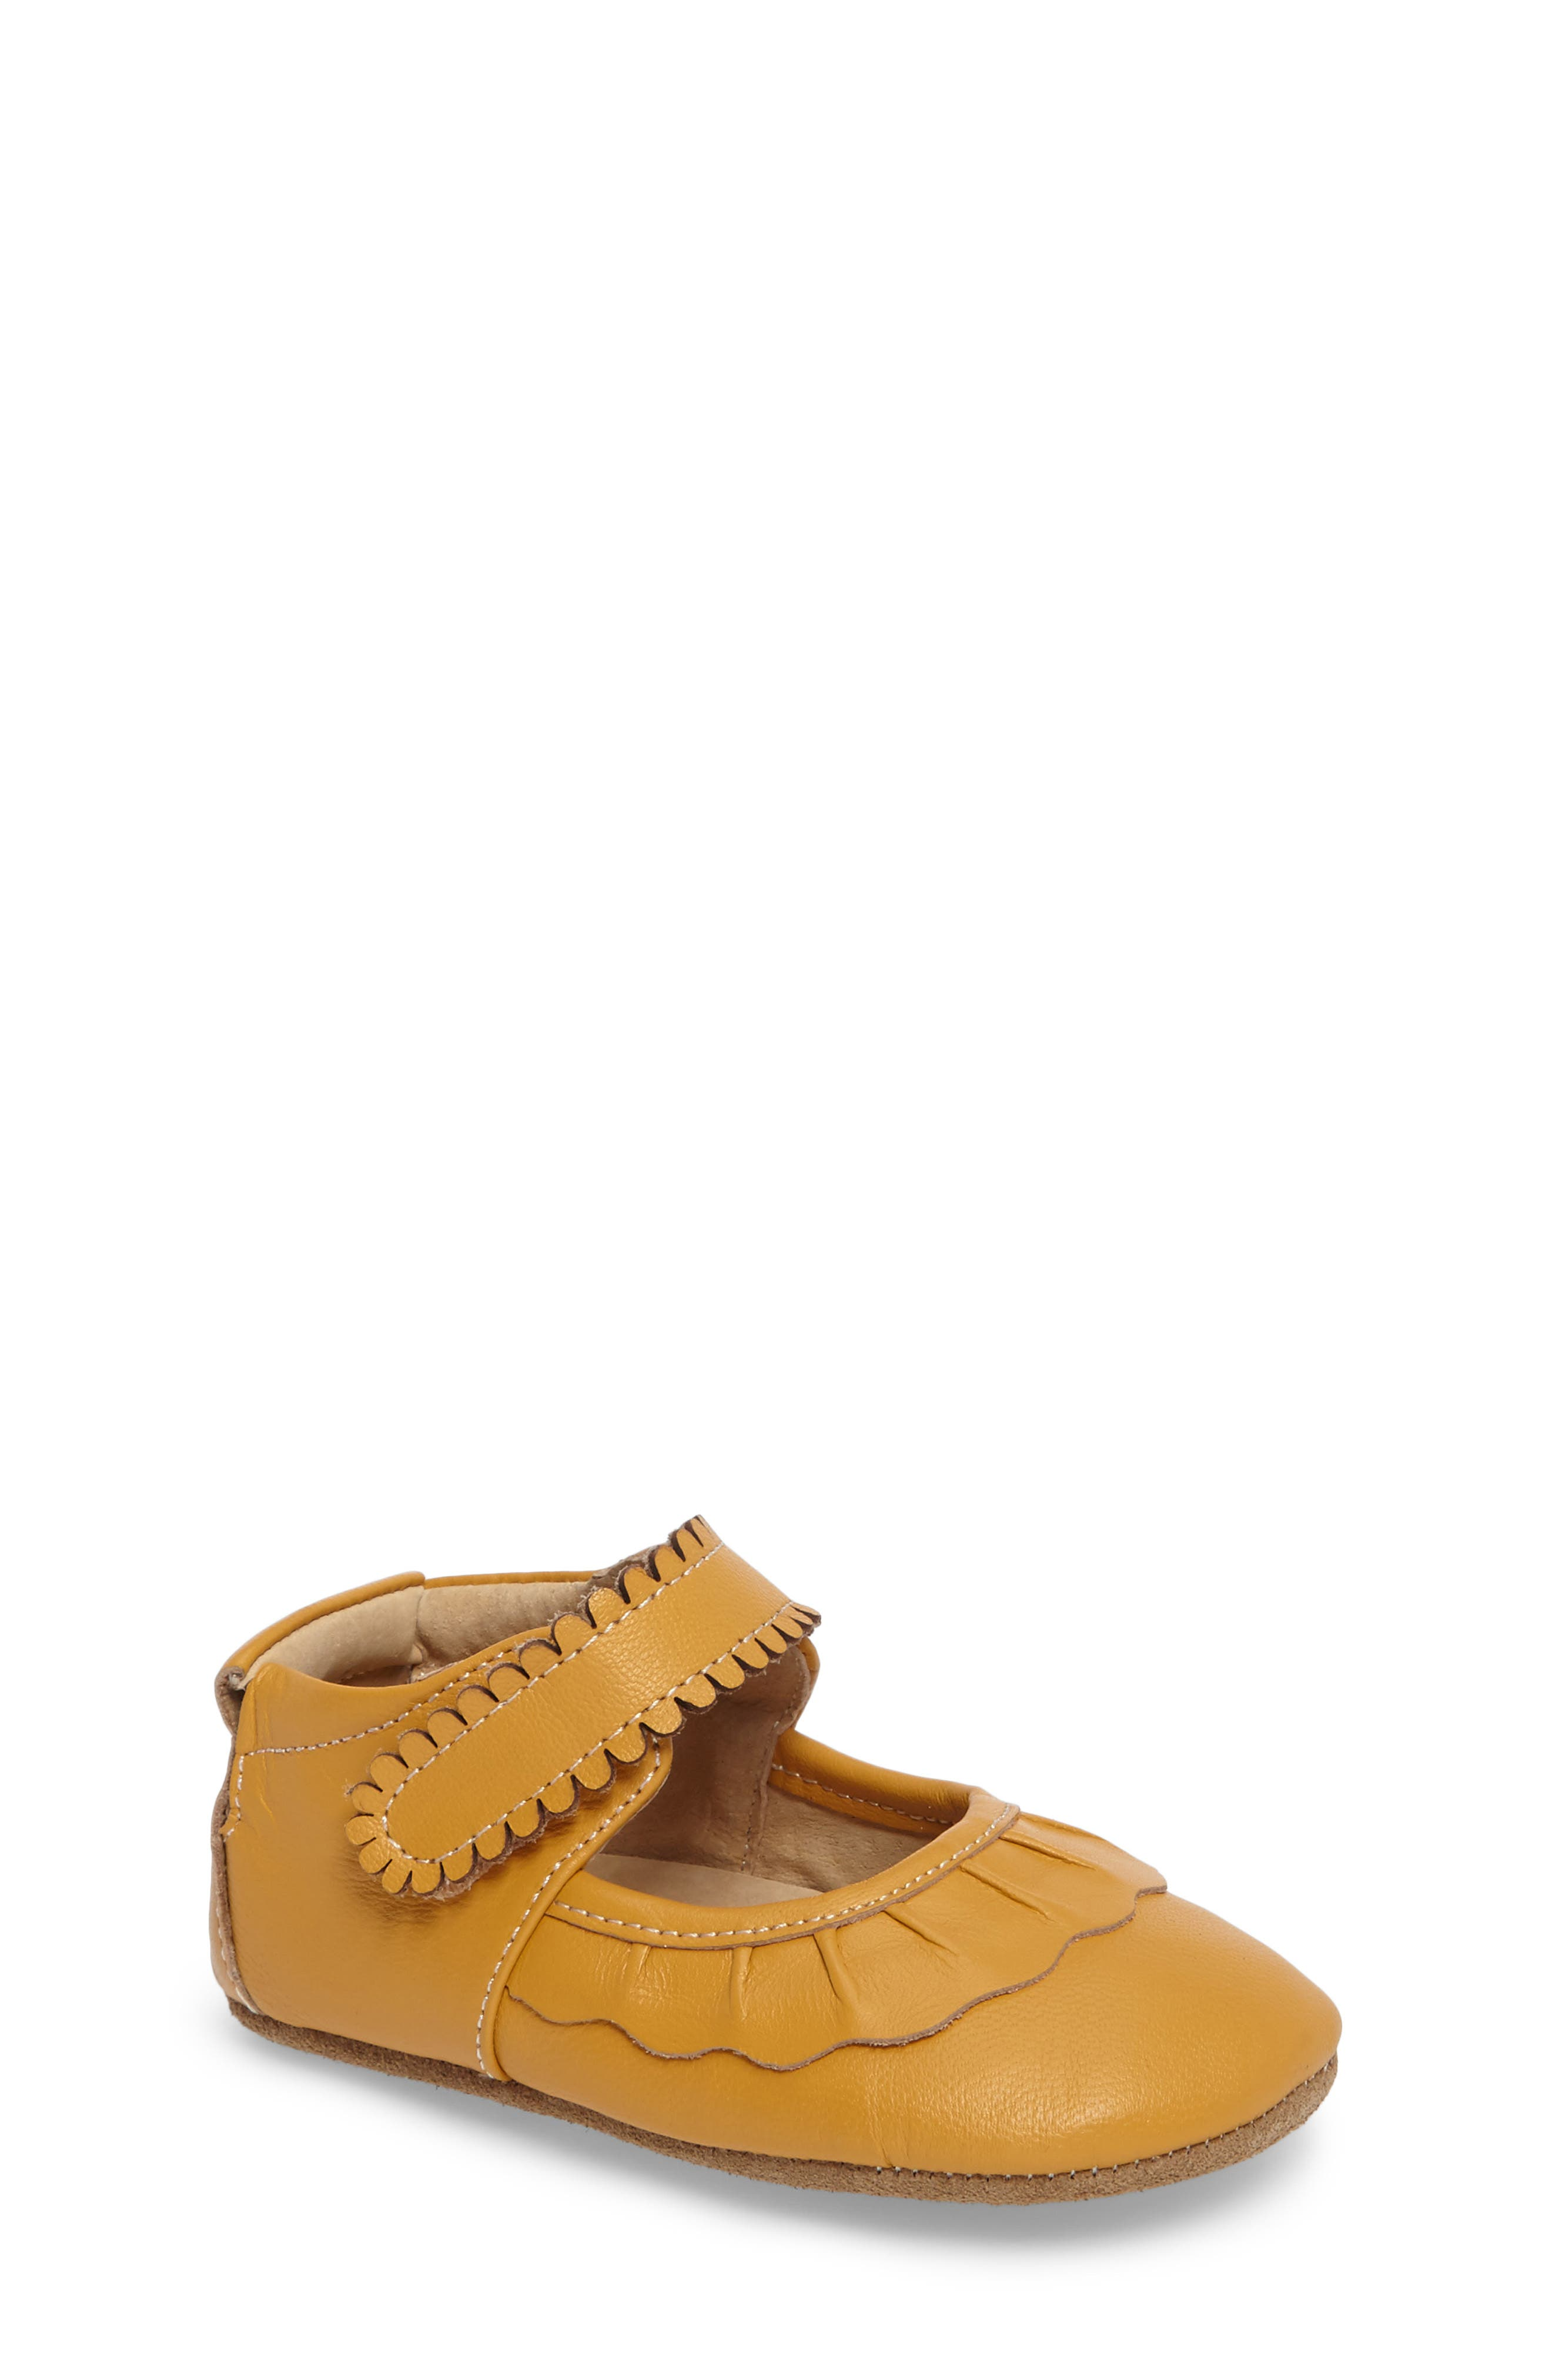 'Ruche' Mary Jane Crib Shoe,                             Main thumbnail 1, color,                             BUTTERSCOTCH LEATHER